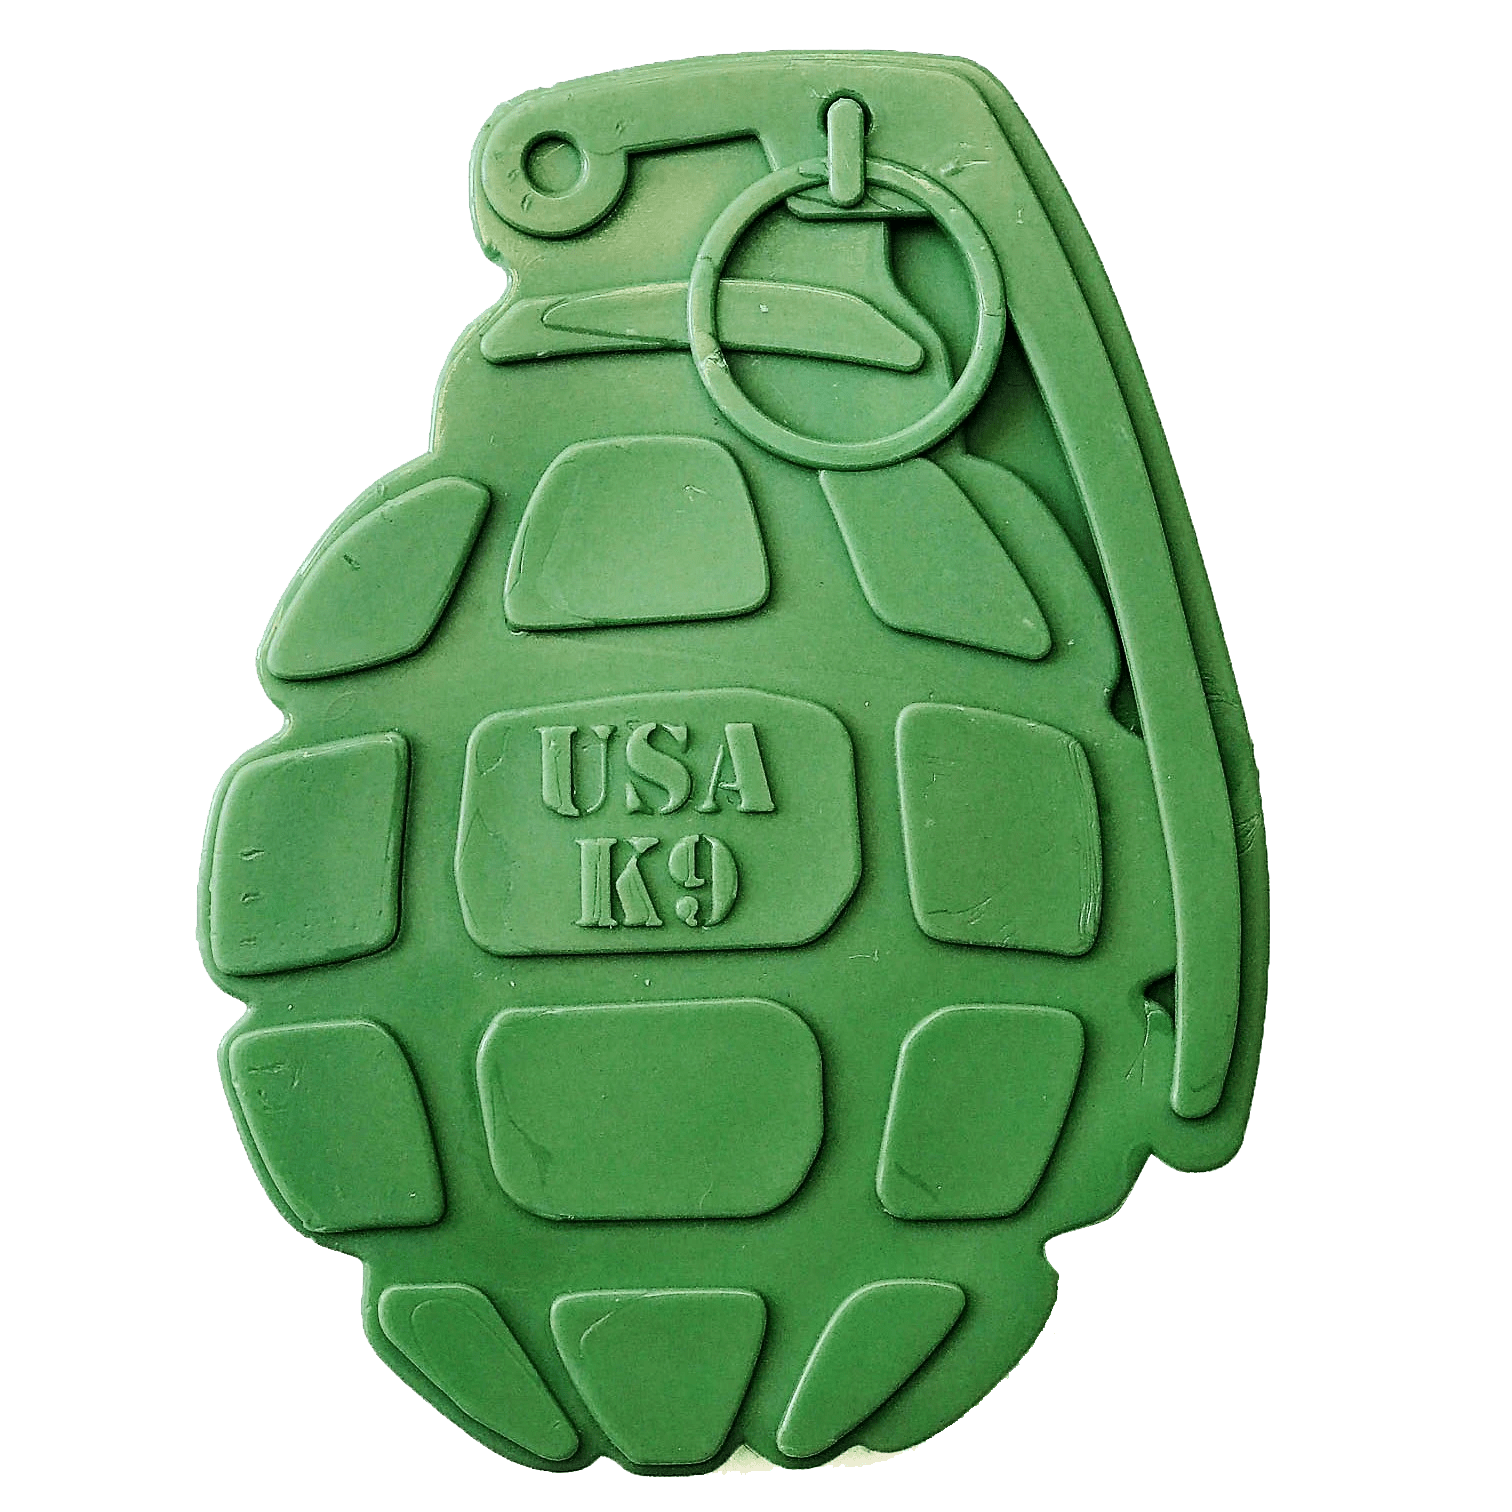 Grenade Chew toy front